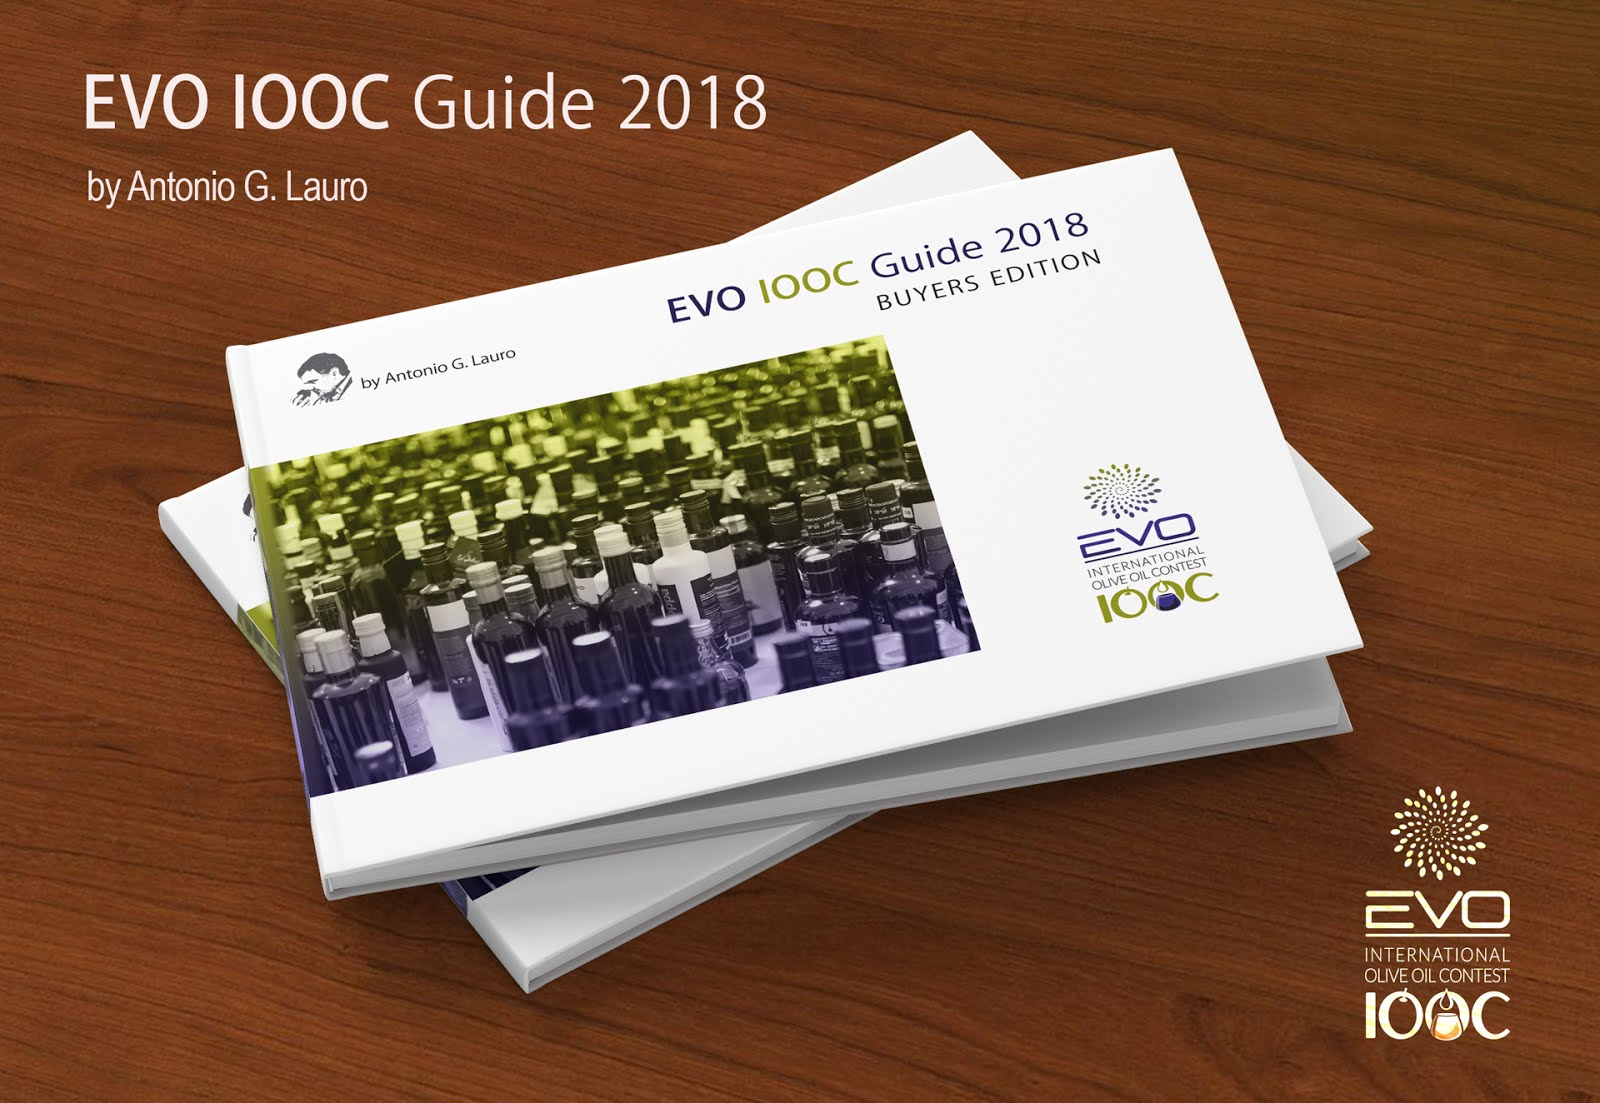 EVO IOOC Guide Buyers Edition 2018